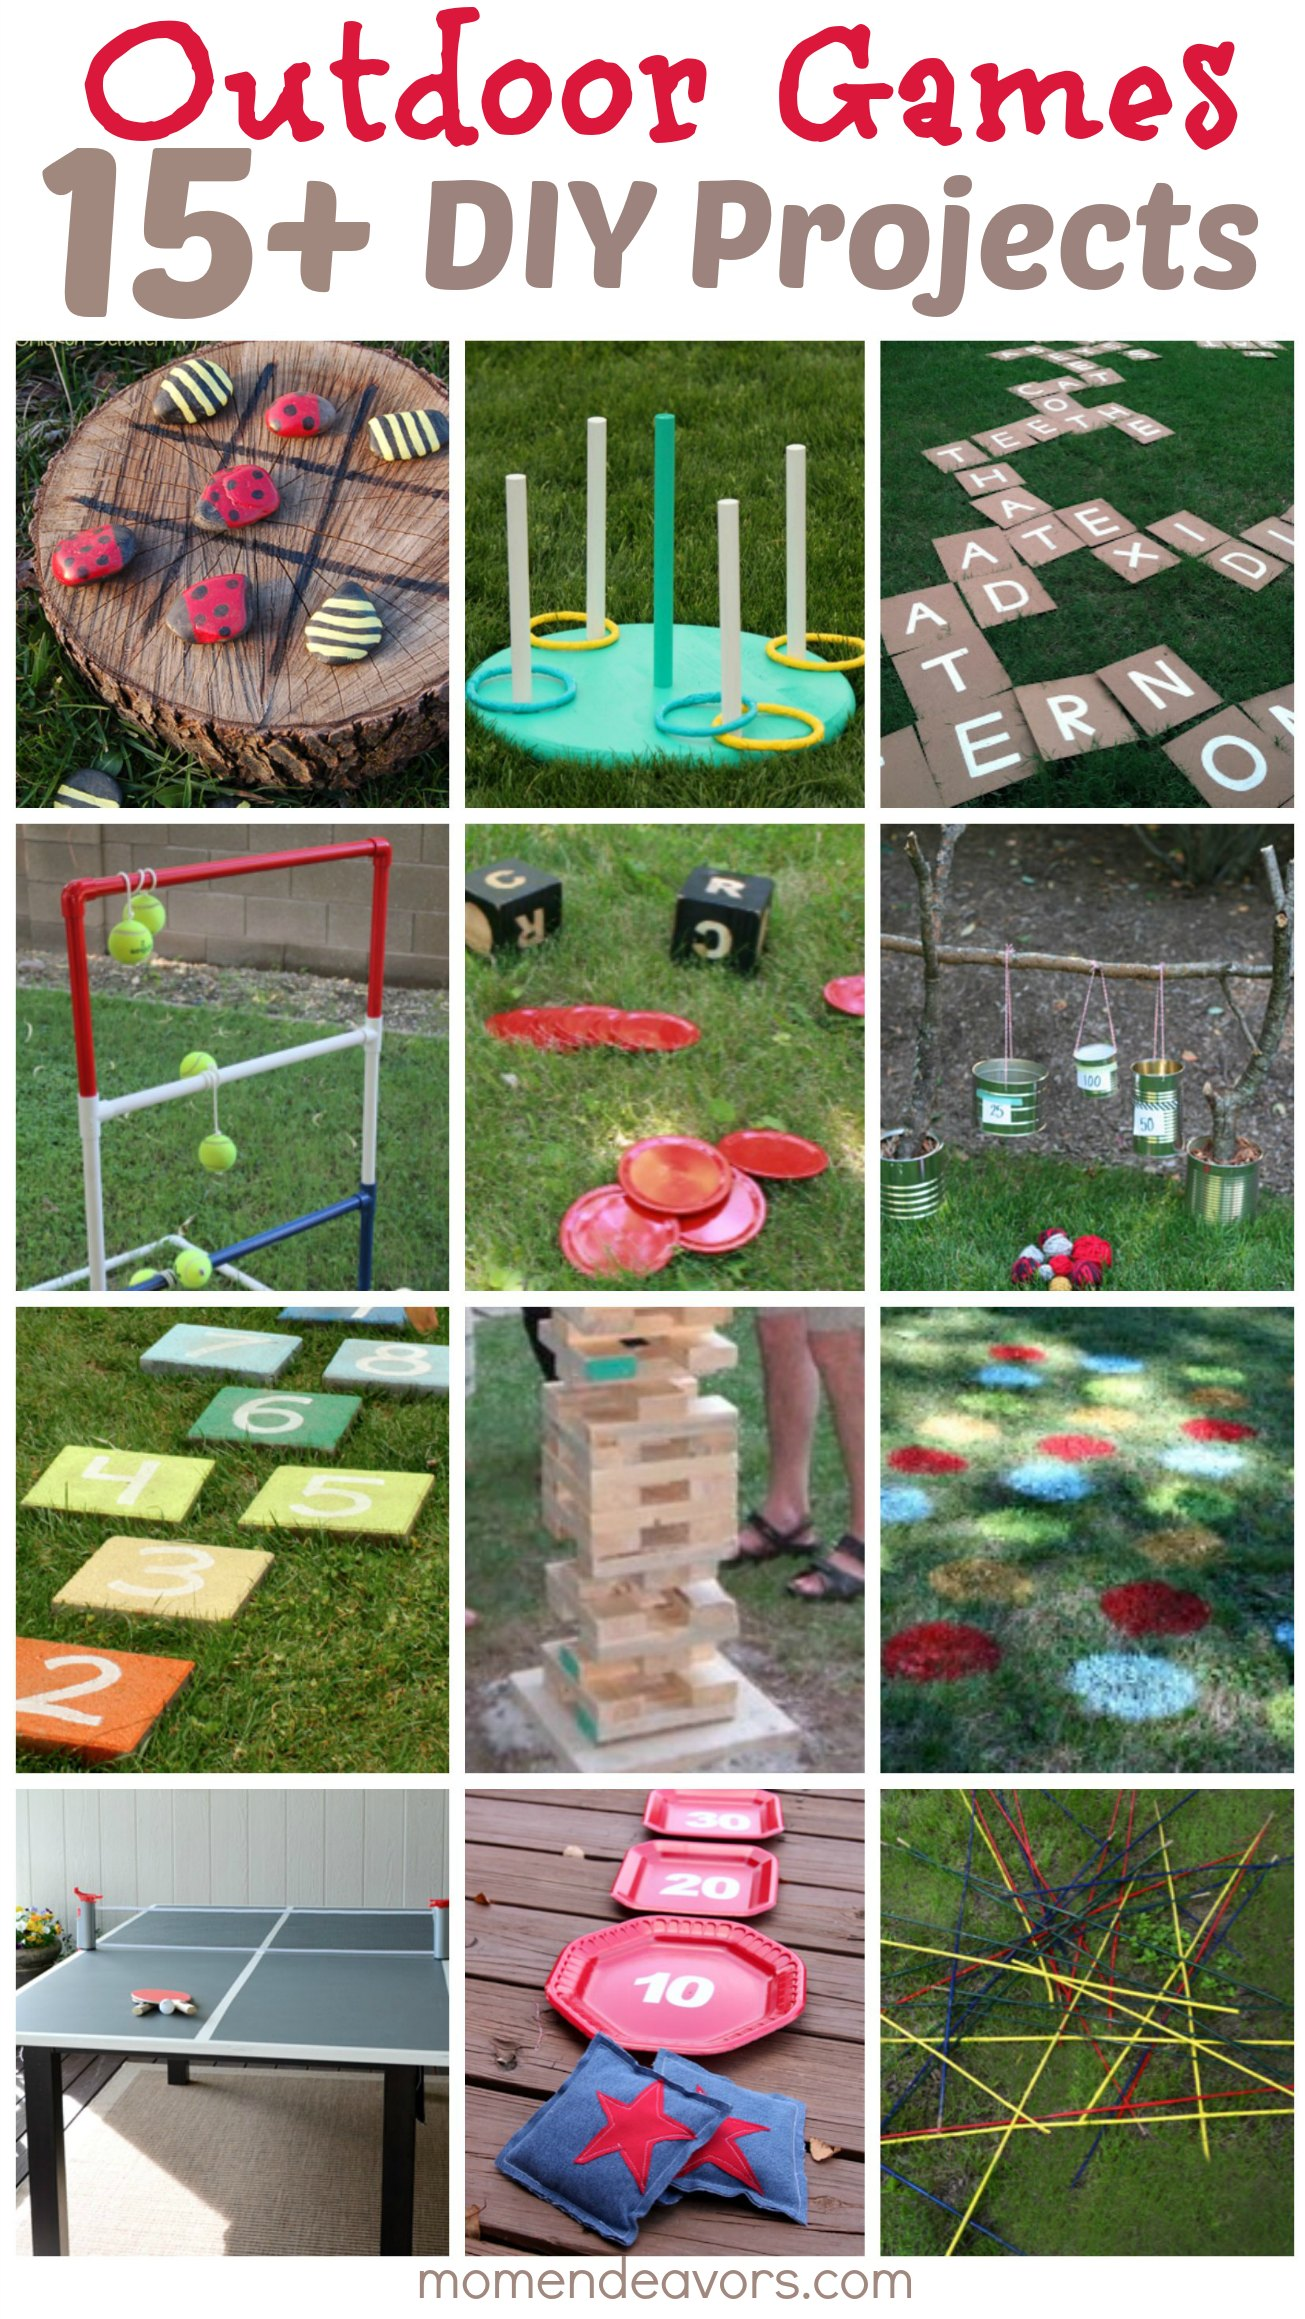 Diy Outdoor Games  15+ Awesome Project Ideas For Backyard